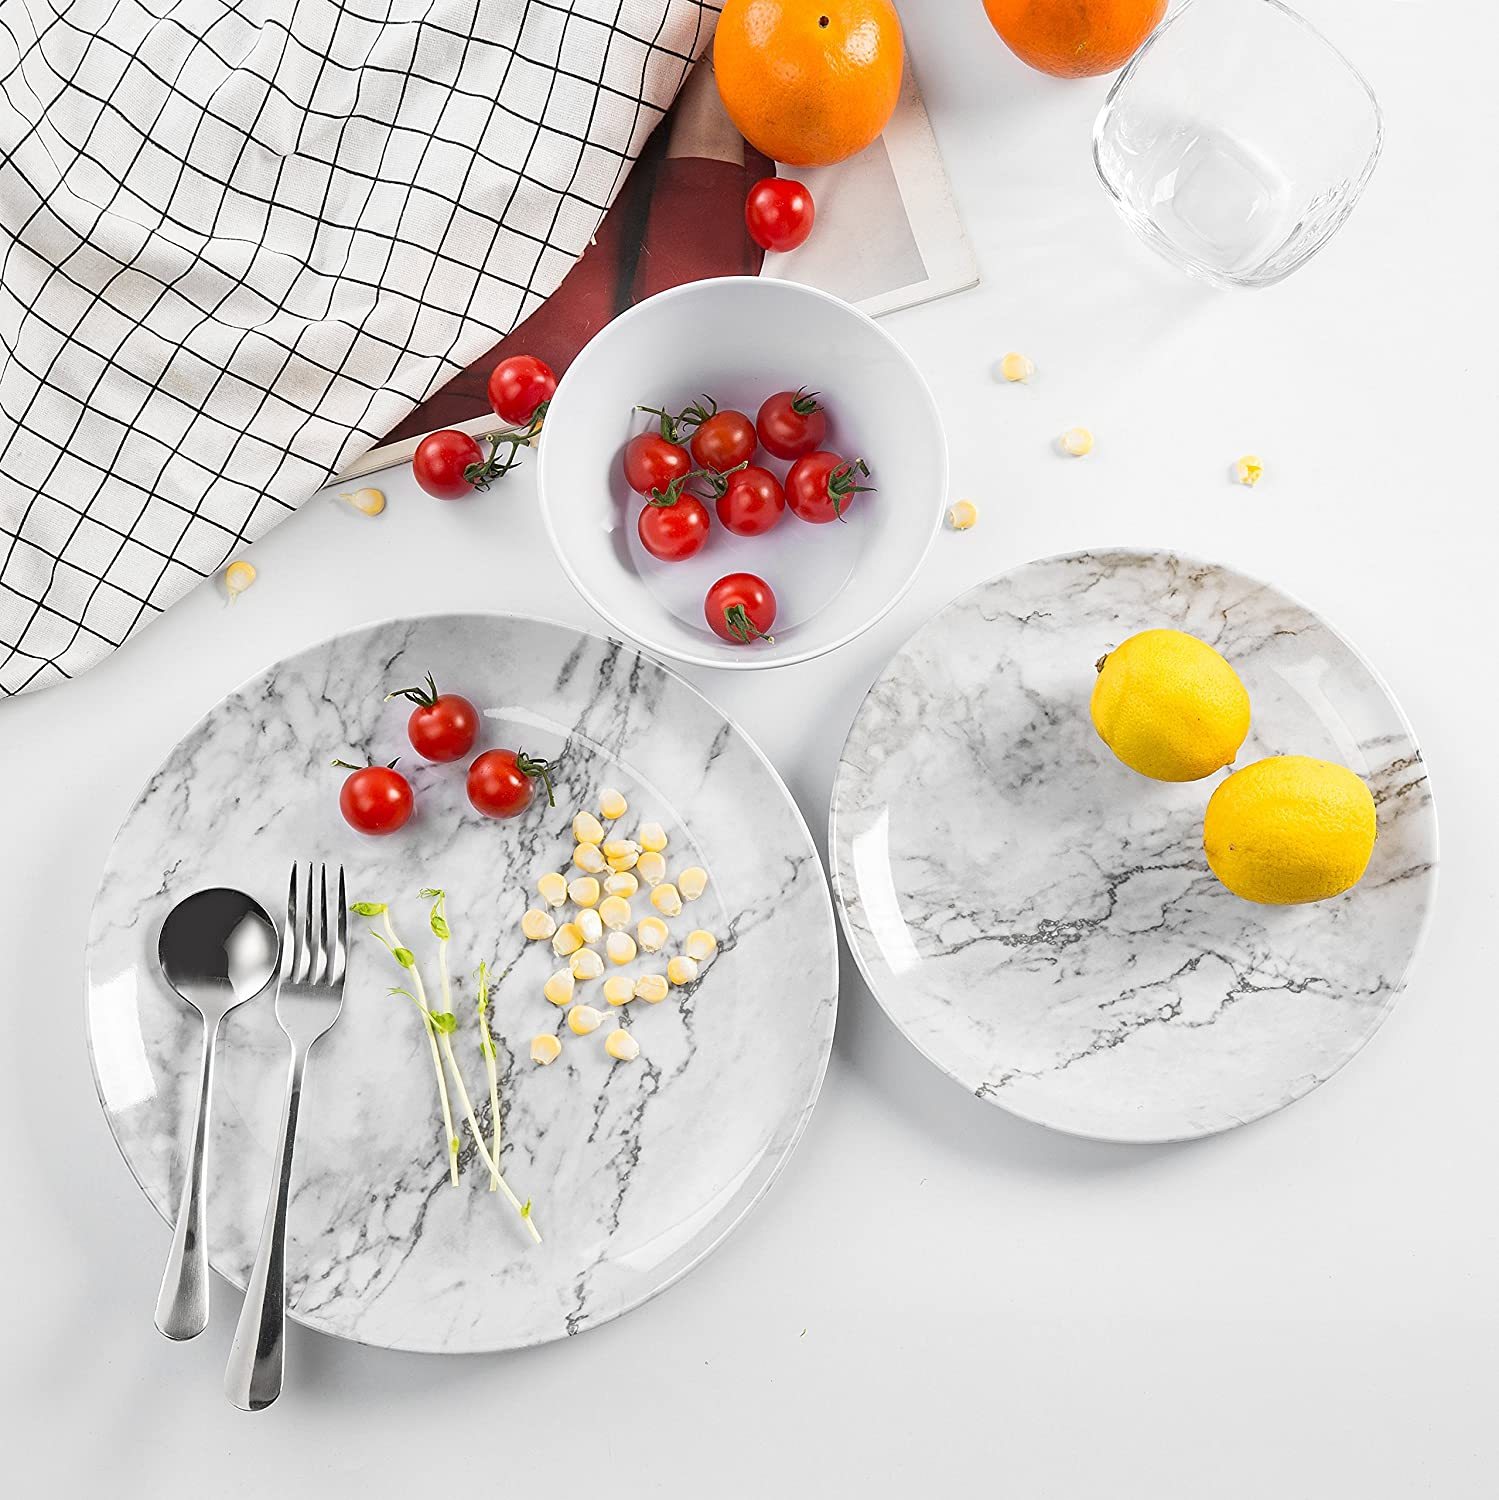 Melamine Dinnerware Set for 4-12 Piece Dinner Dishes Set for Camping Use,Lightweight Unbreakable//Dishwasher Safe Marble Pattern